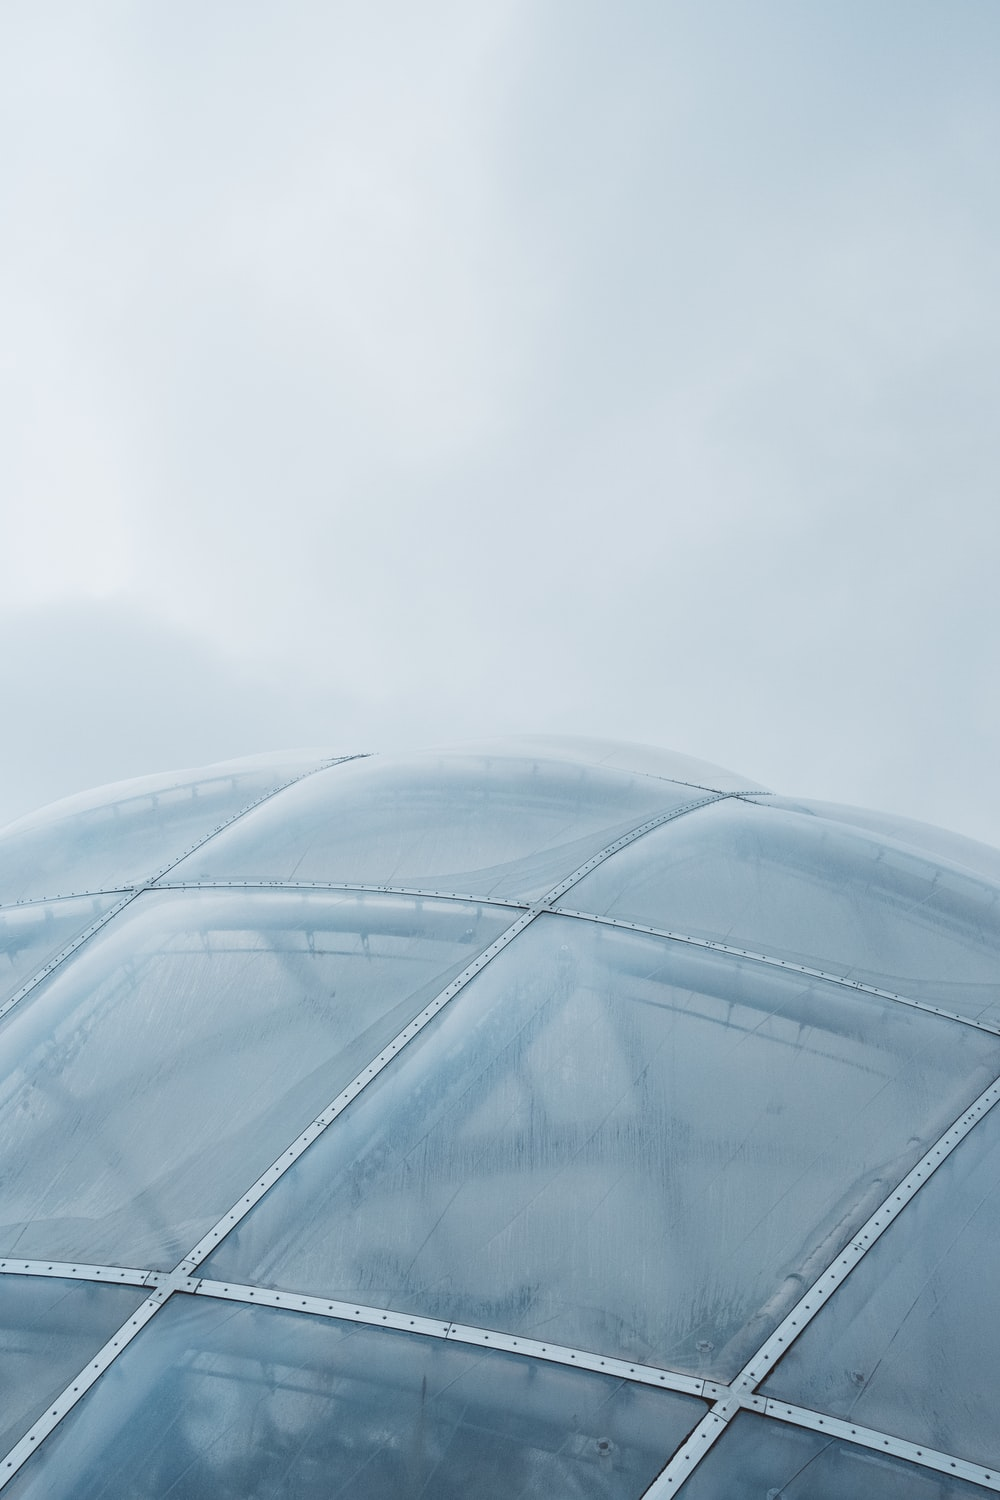 white metal framed glass dome